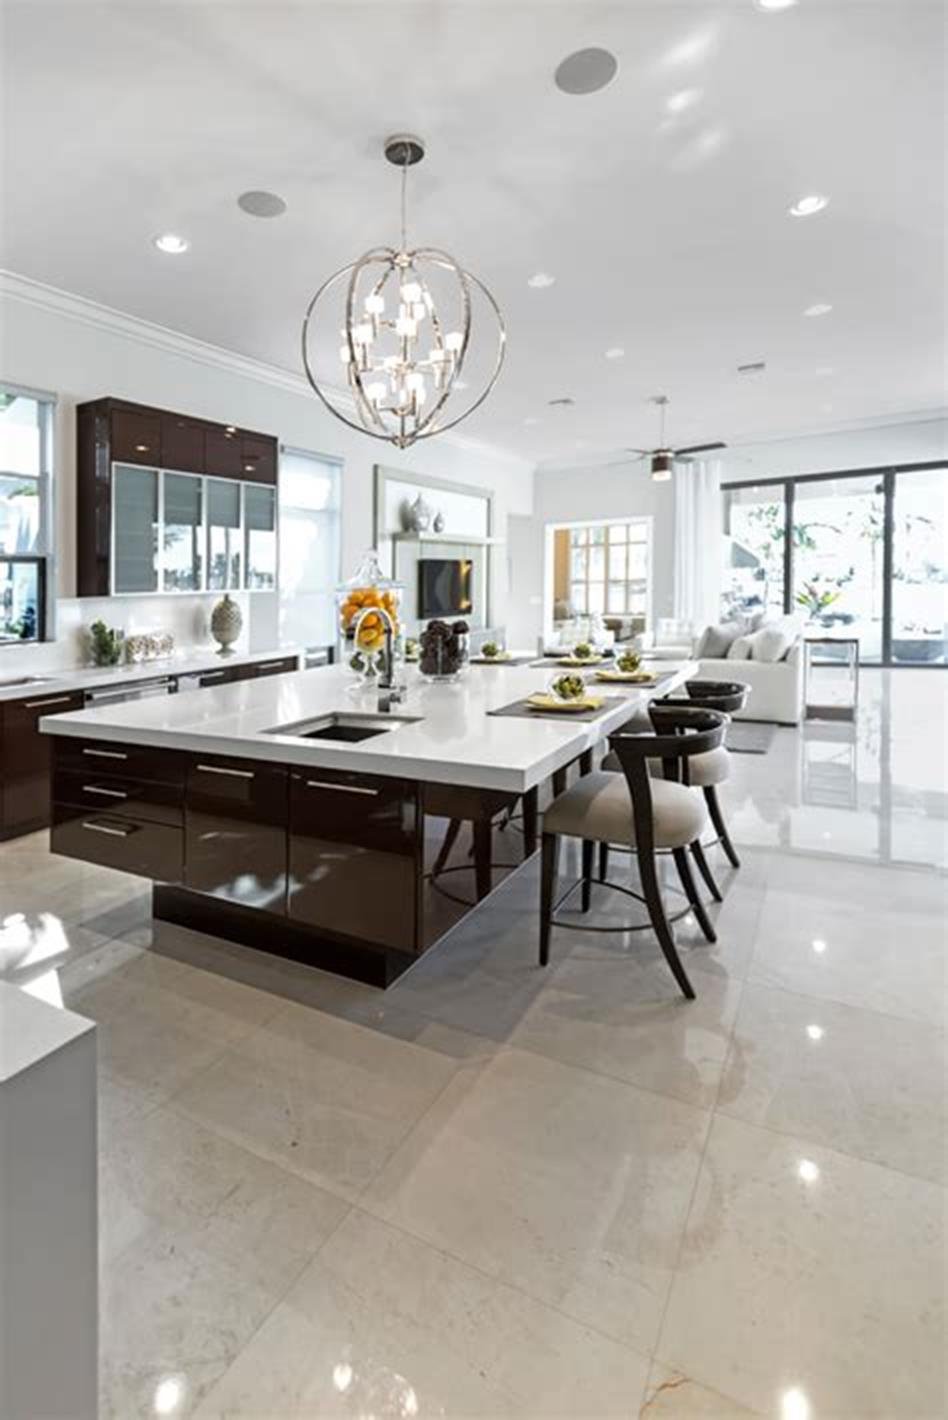 35 Stunning Contemporary Kitchen Design Ideas Youll Love 44